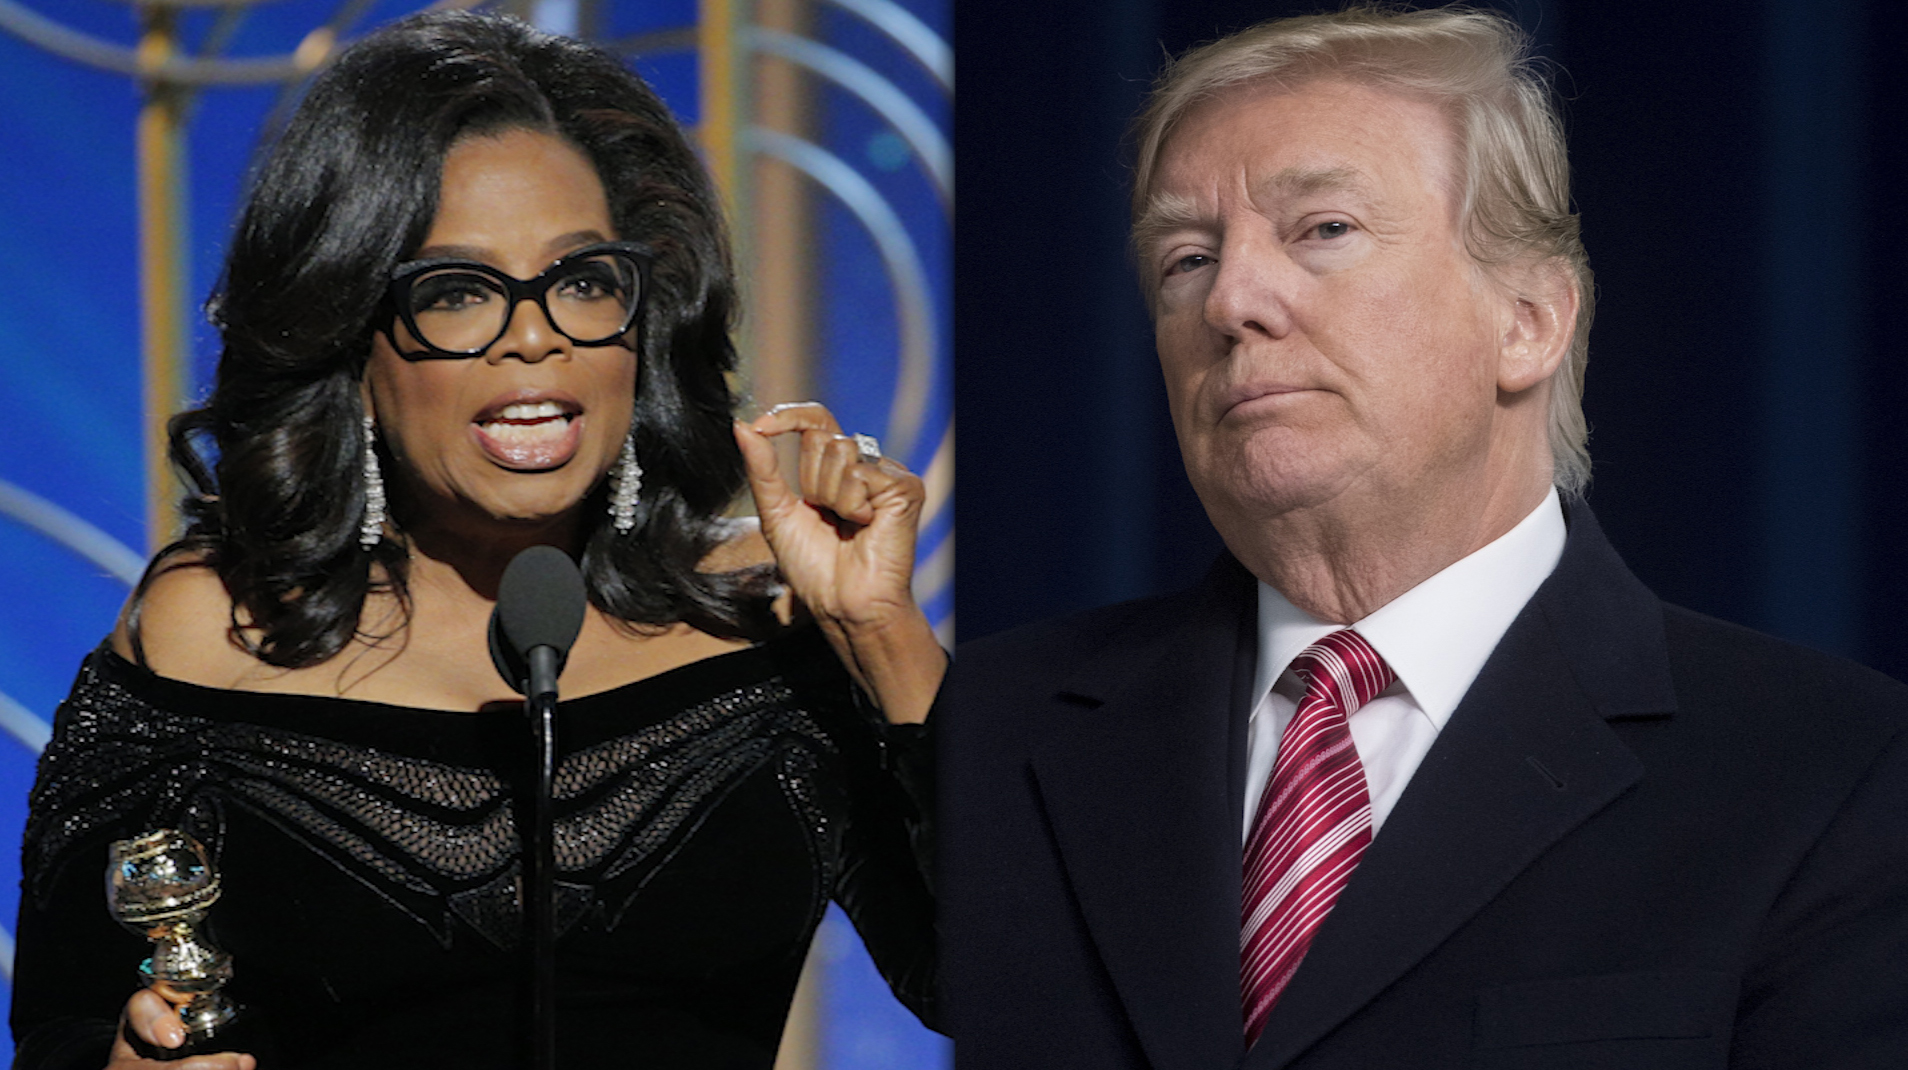 Image result for images of oprah vs trump